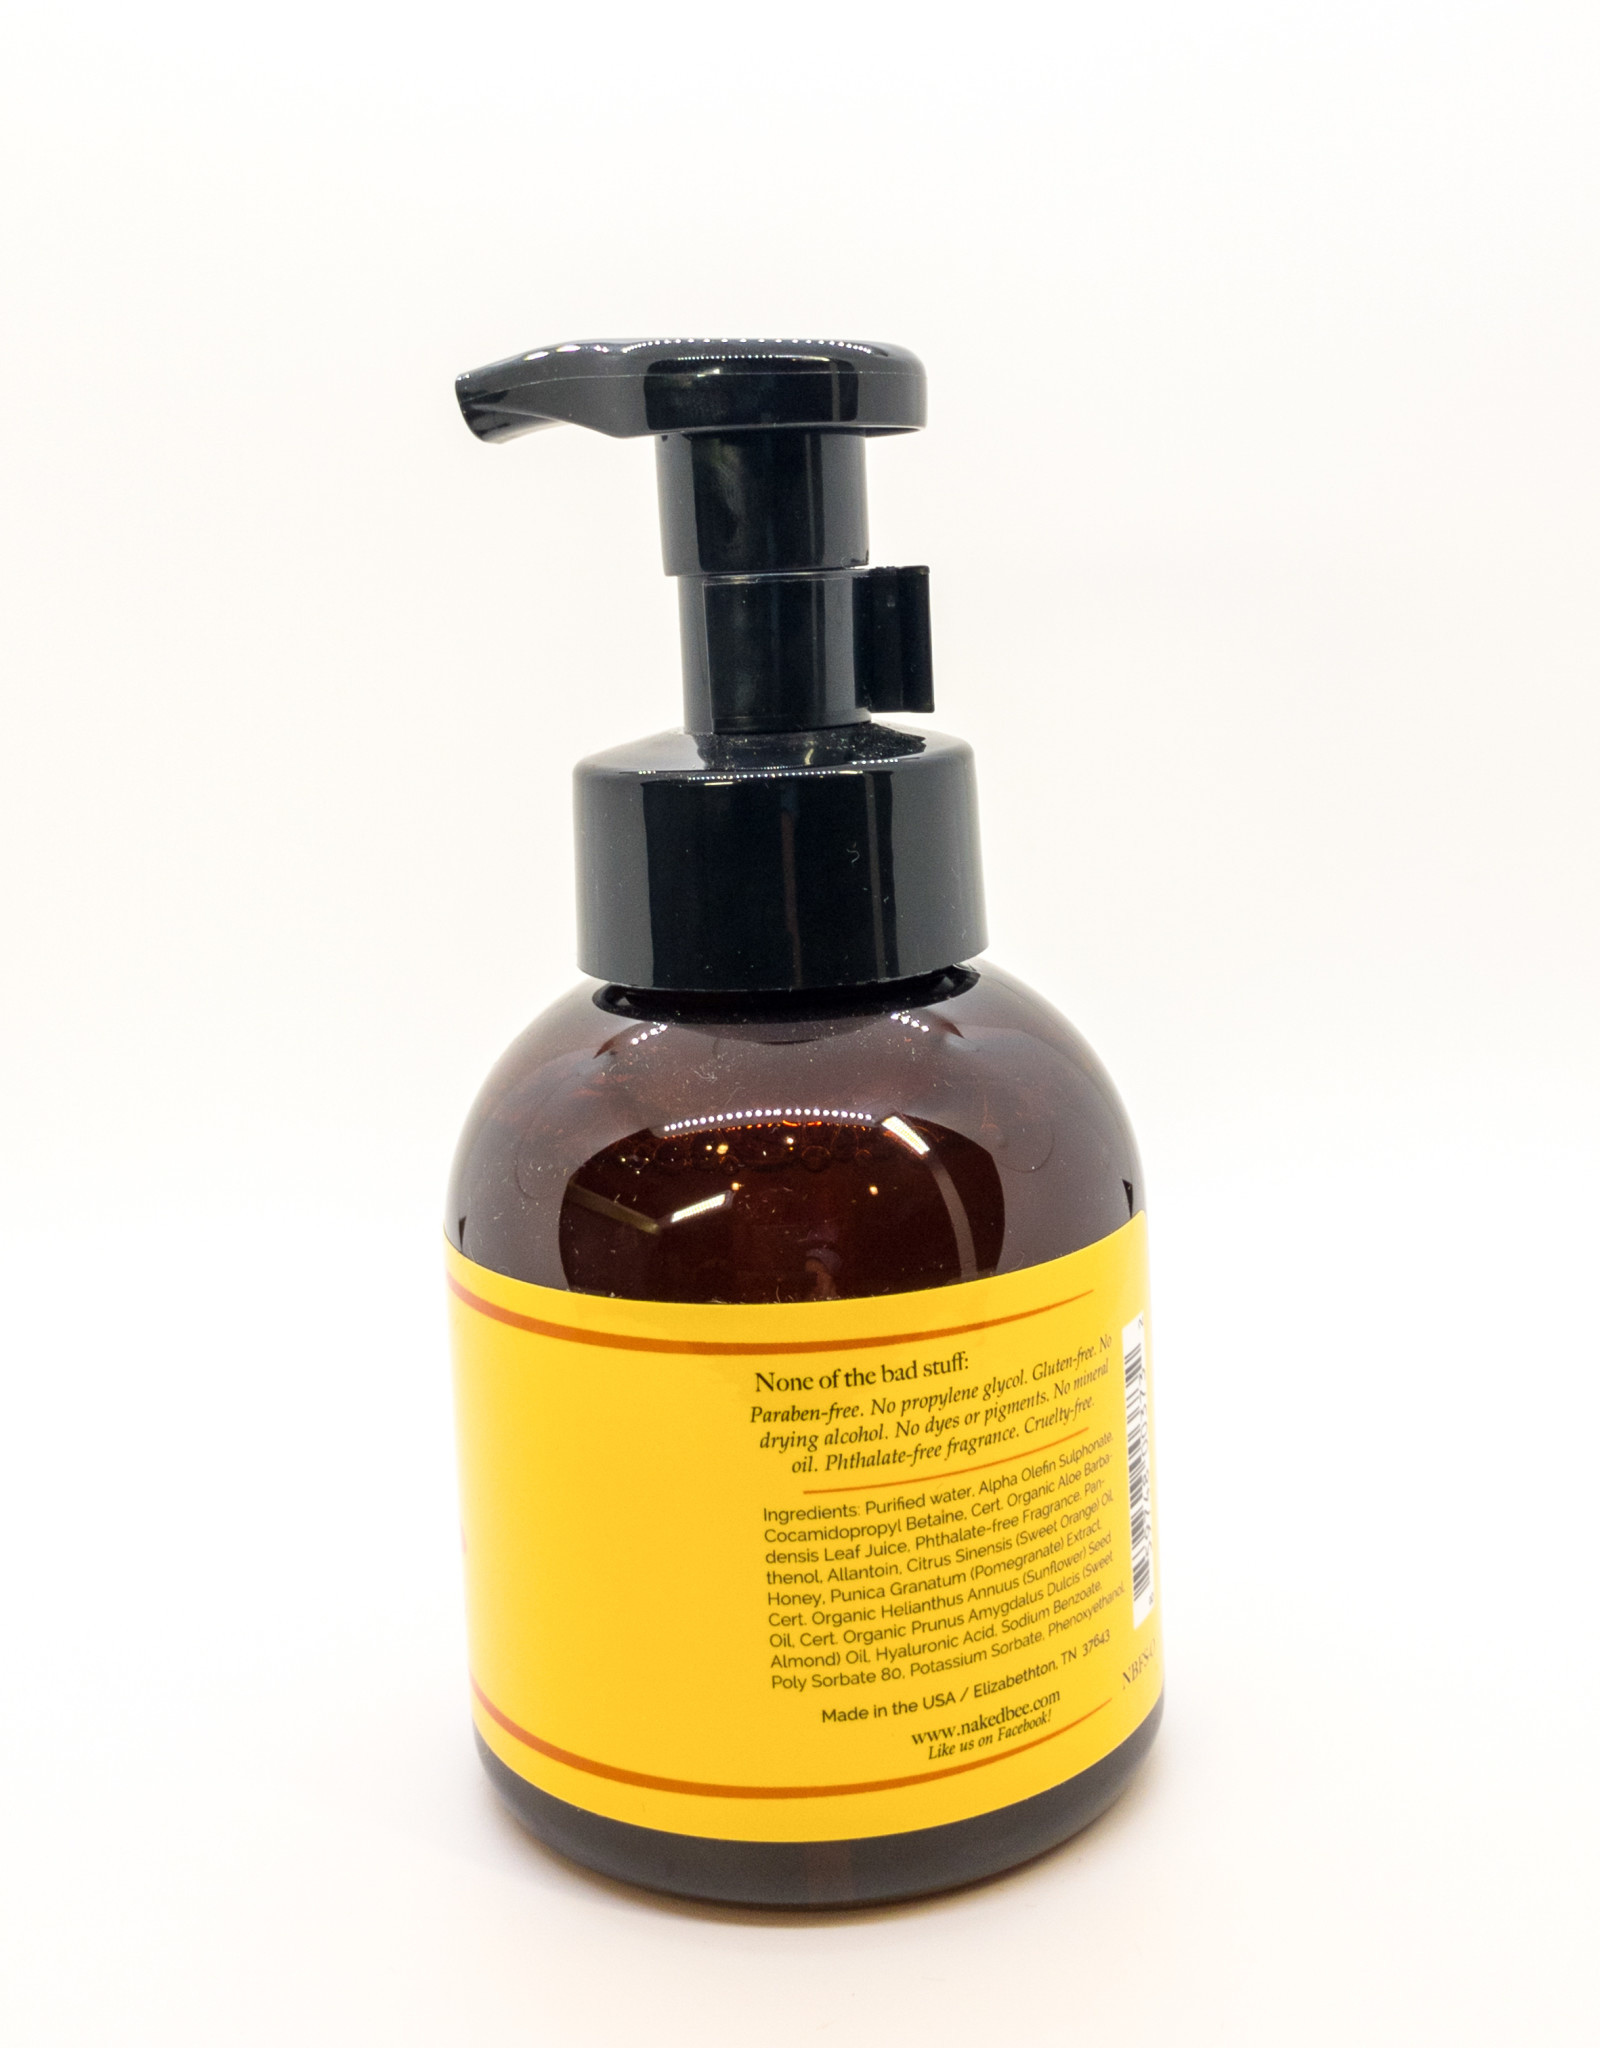 The Naked Bee The Naked Bee - Foaming Hand Soap in Orange Blossom Honey, 12 oz.